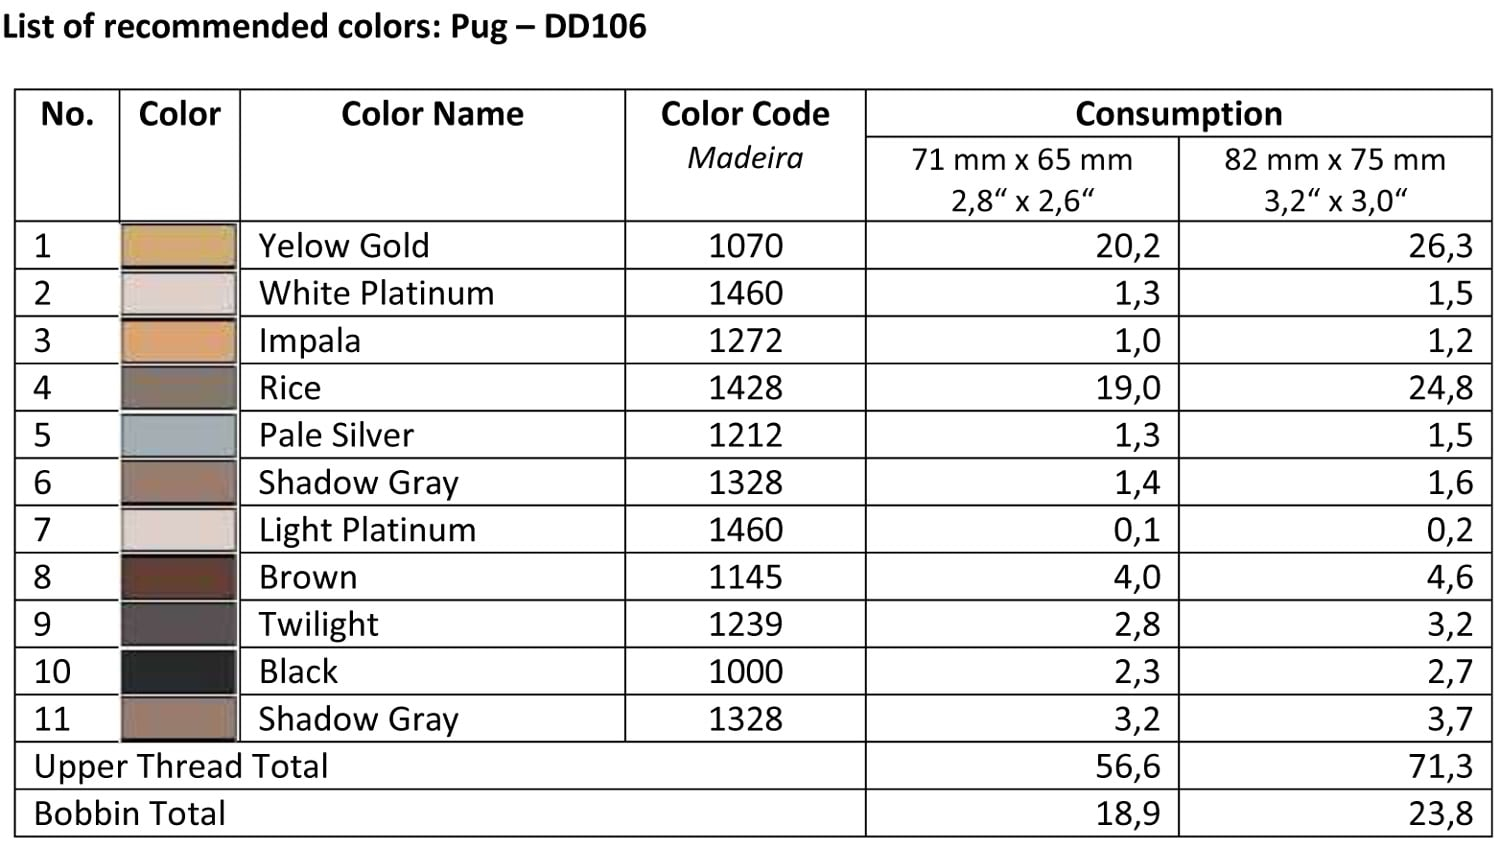 List of Recommended Colors -Pug DD106